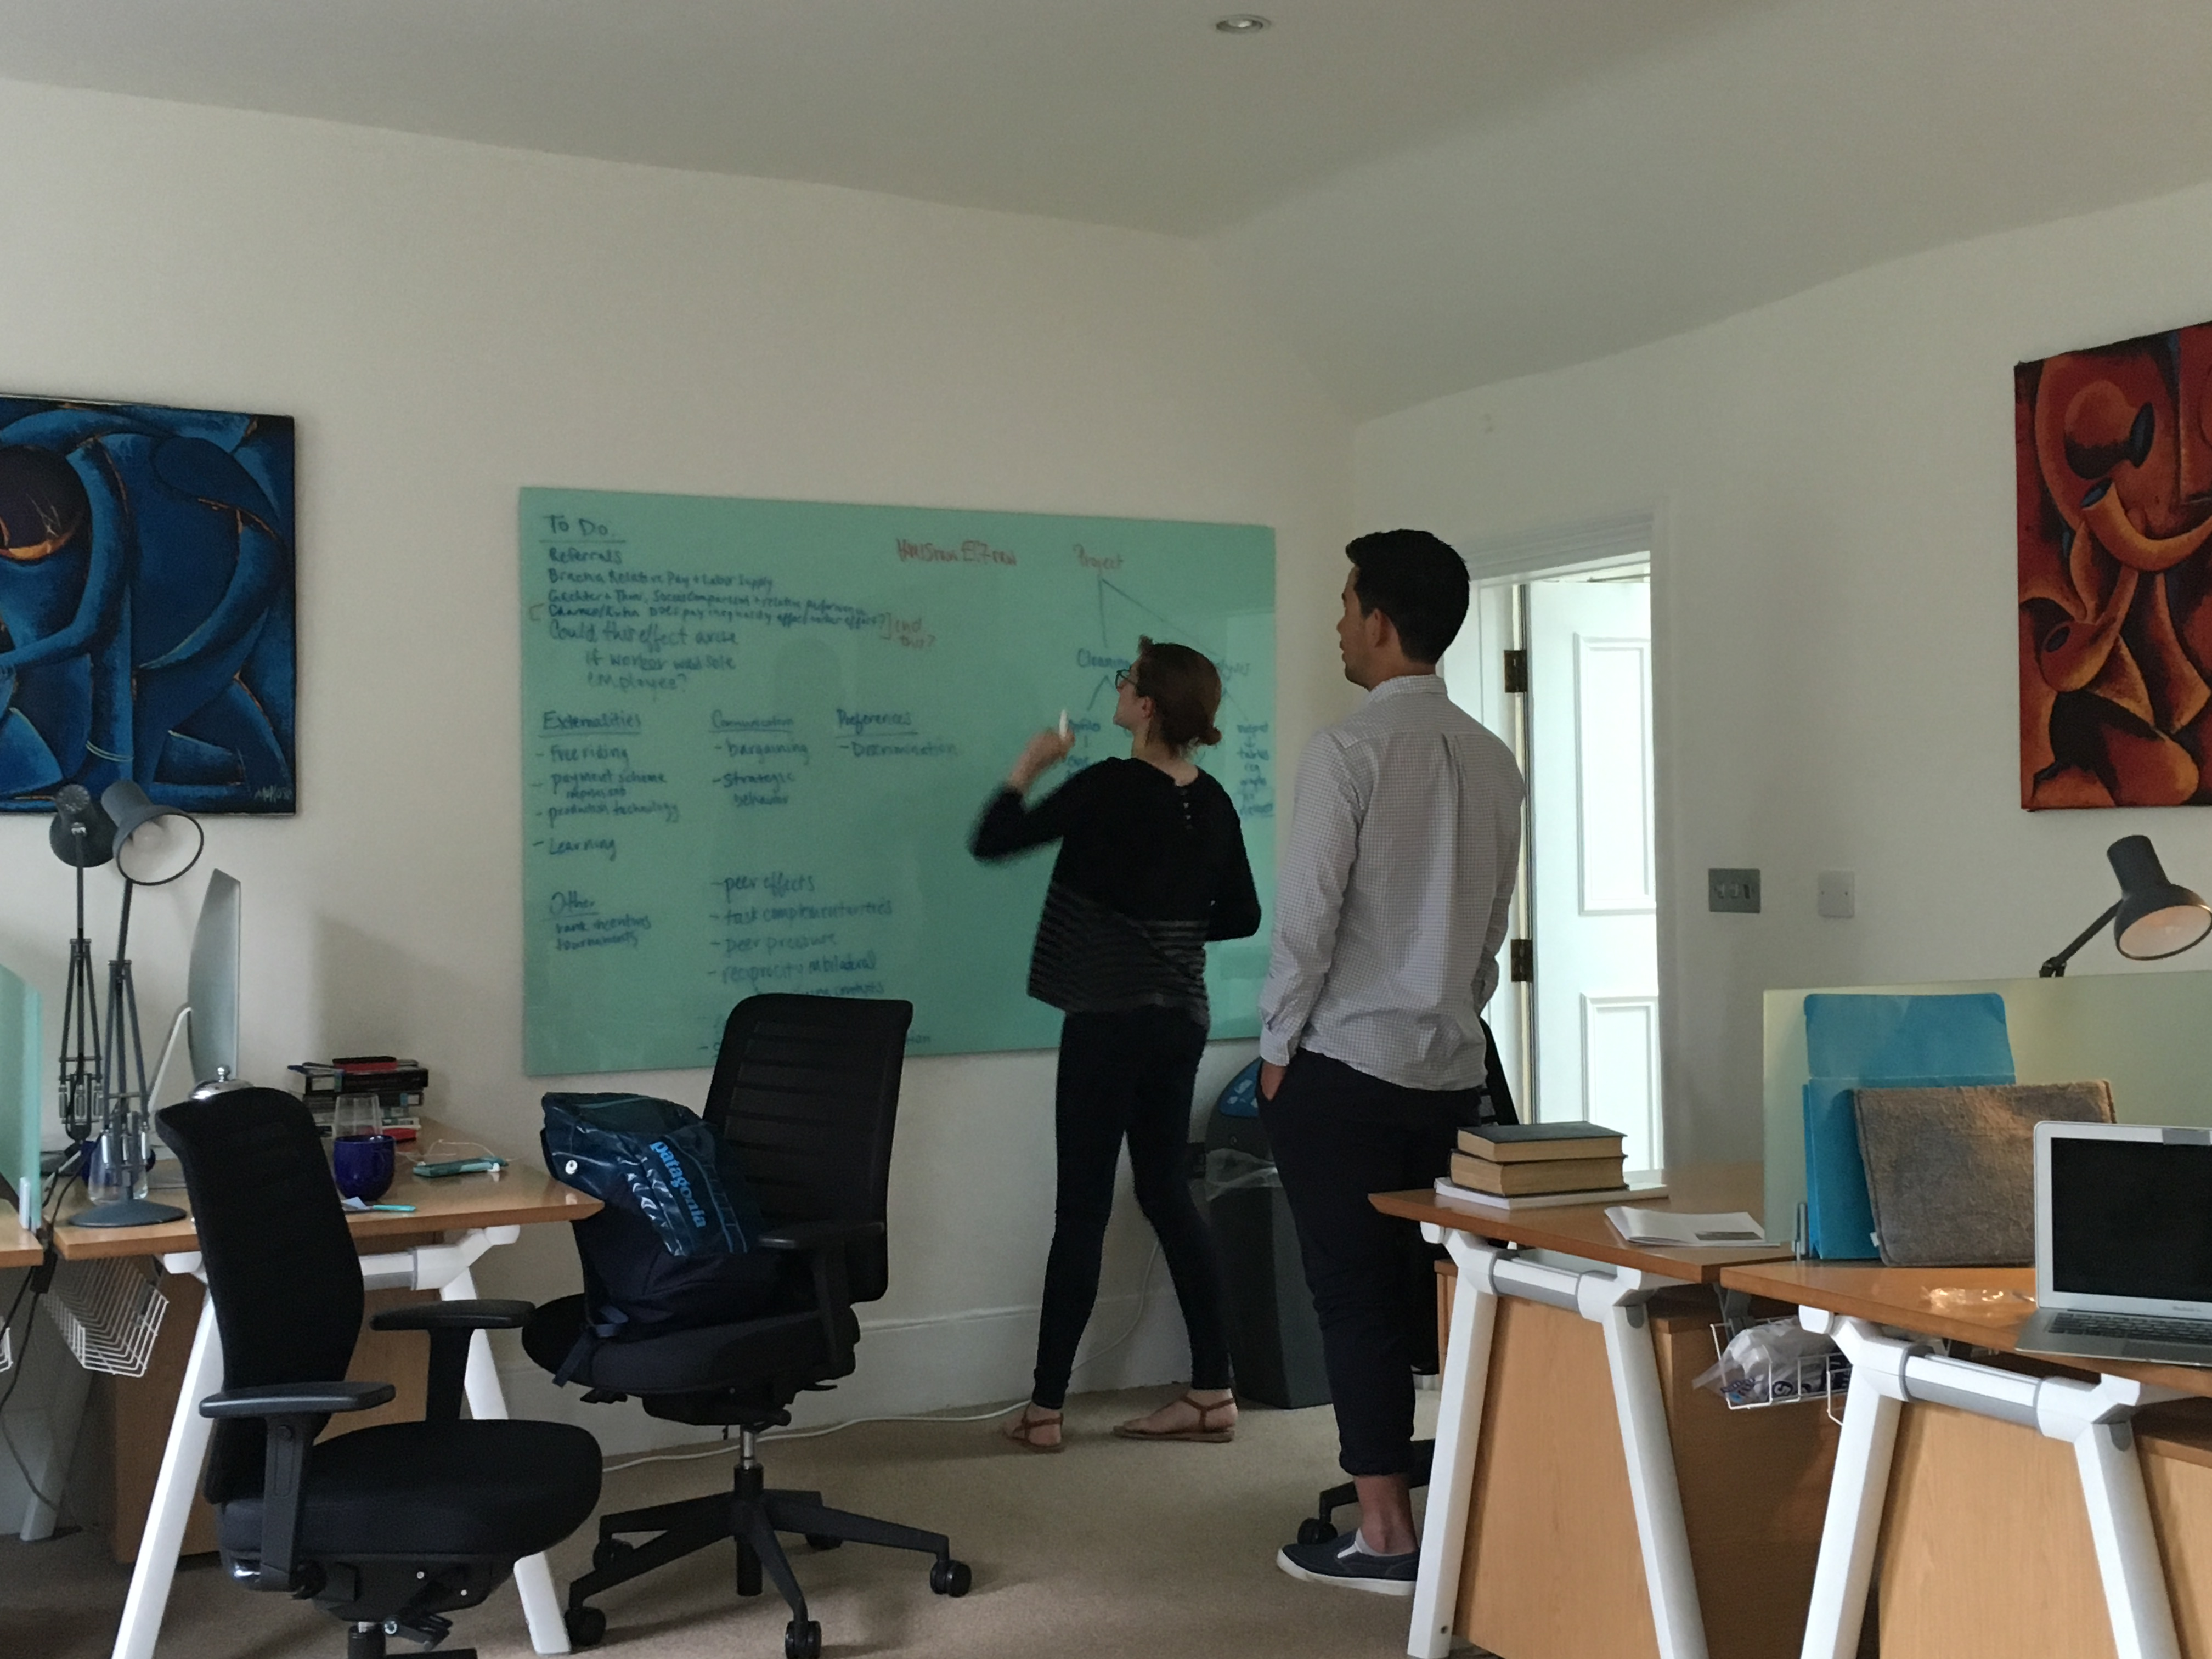 Kim Sarnoff and Shotaro Nakamura at work in the research office